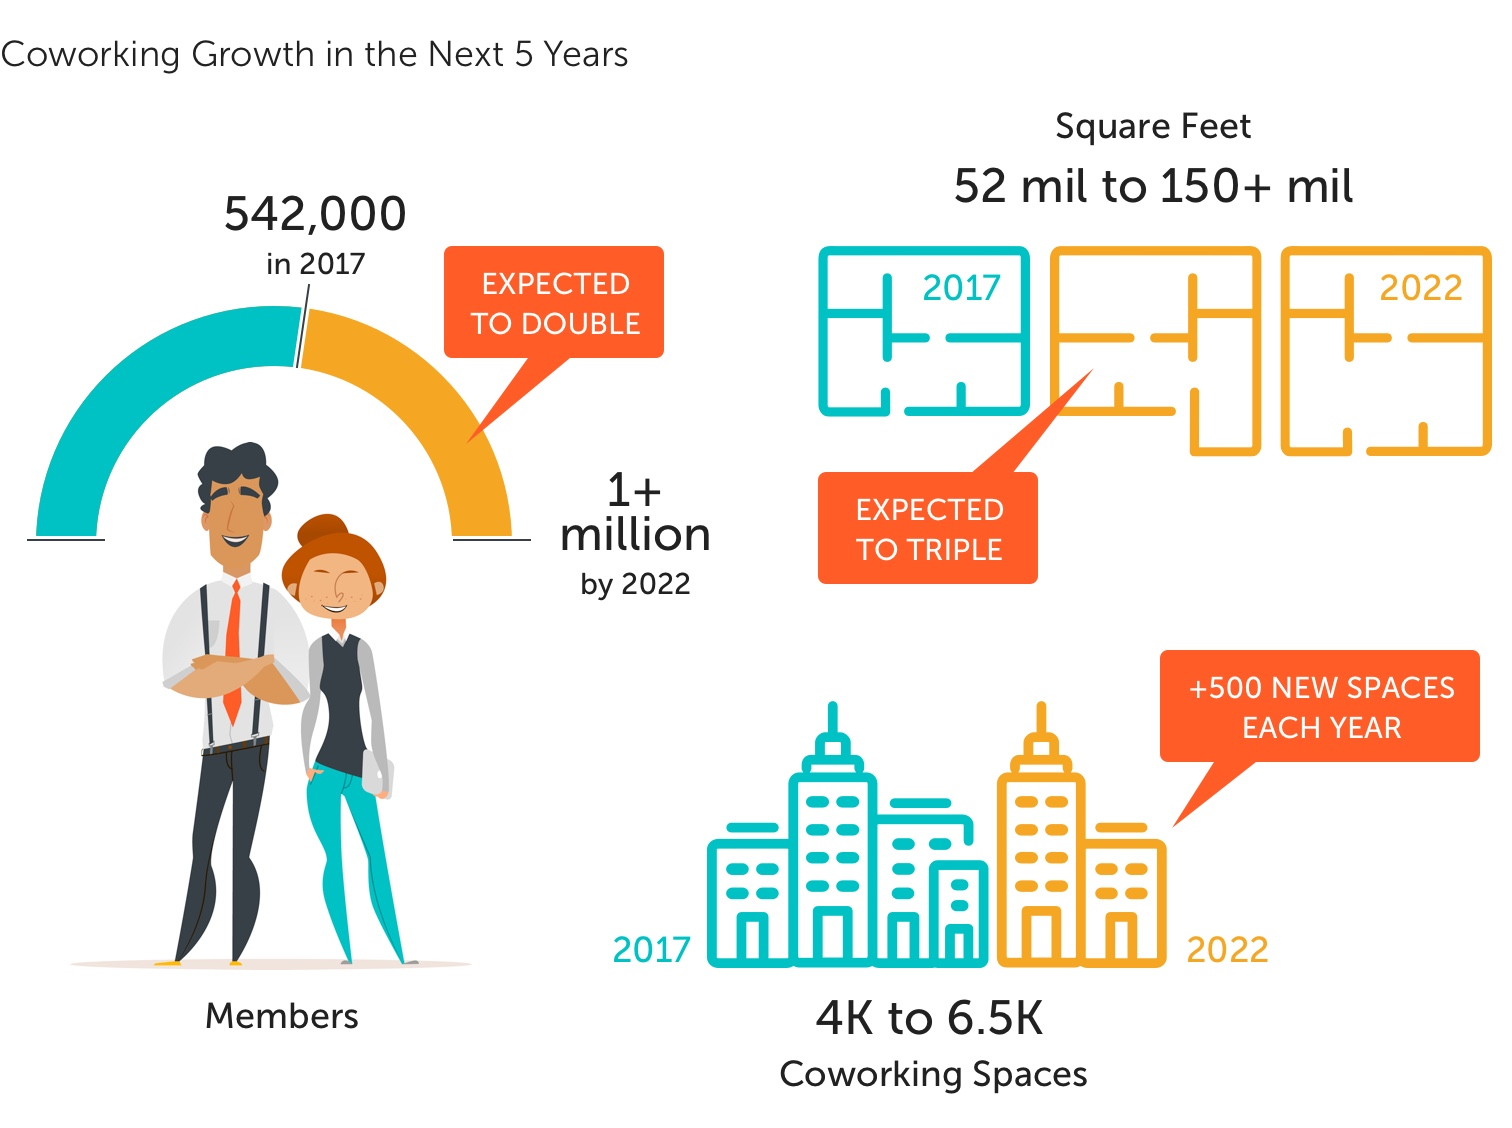 Coworking Growth in the Next 5 Years